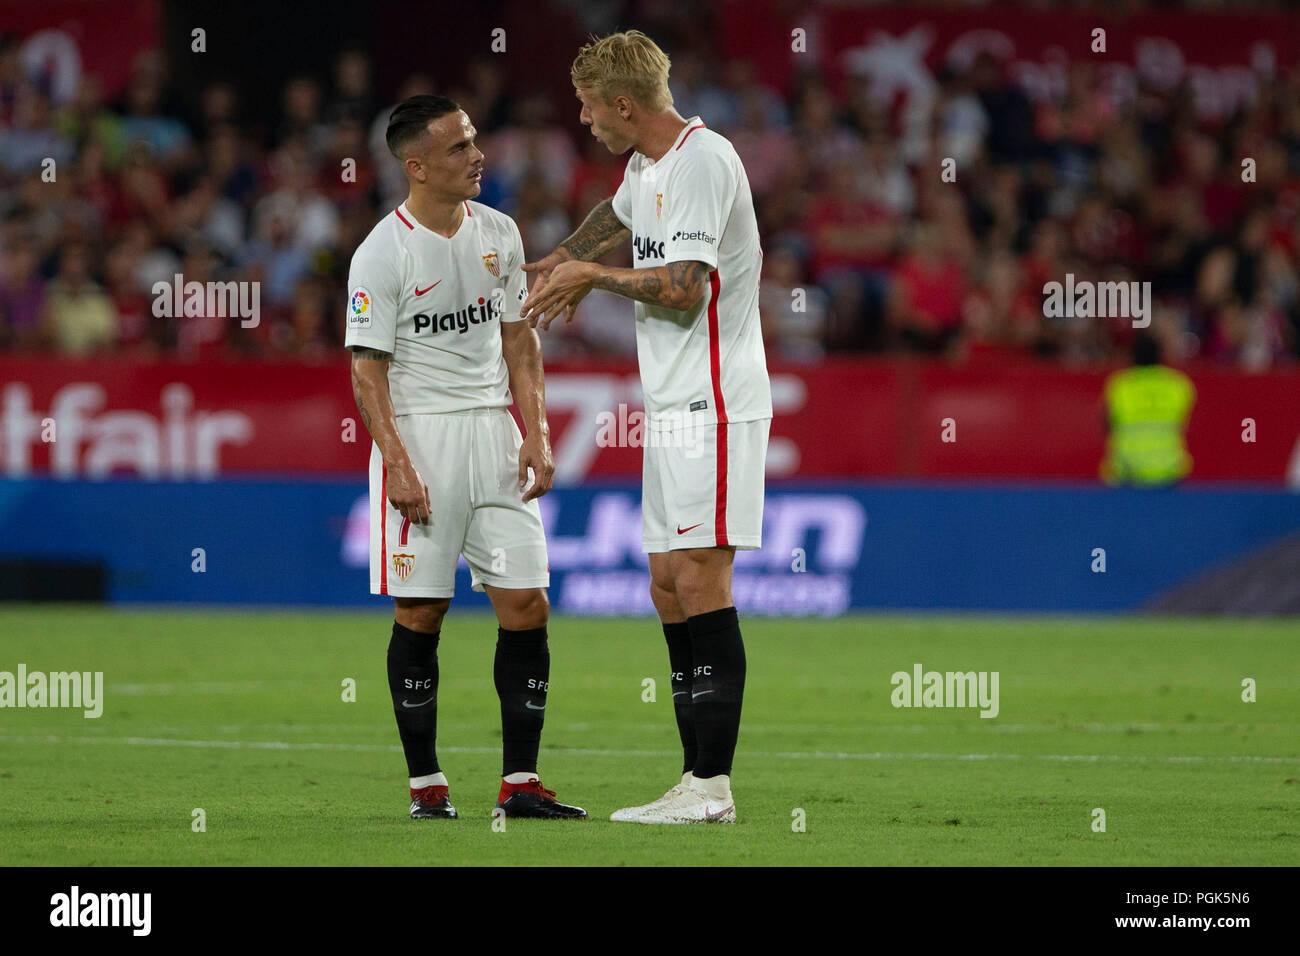 Roque Mesa Sevilla Spain 26th August 2018 Roque Mesa And Kjær